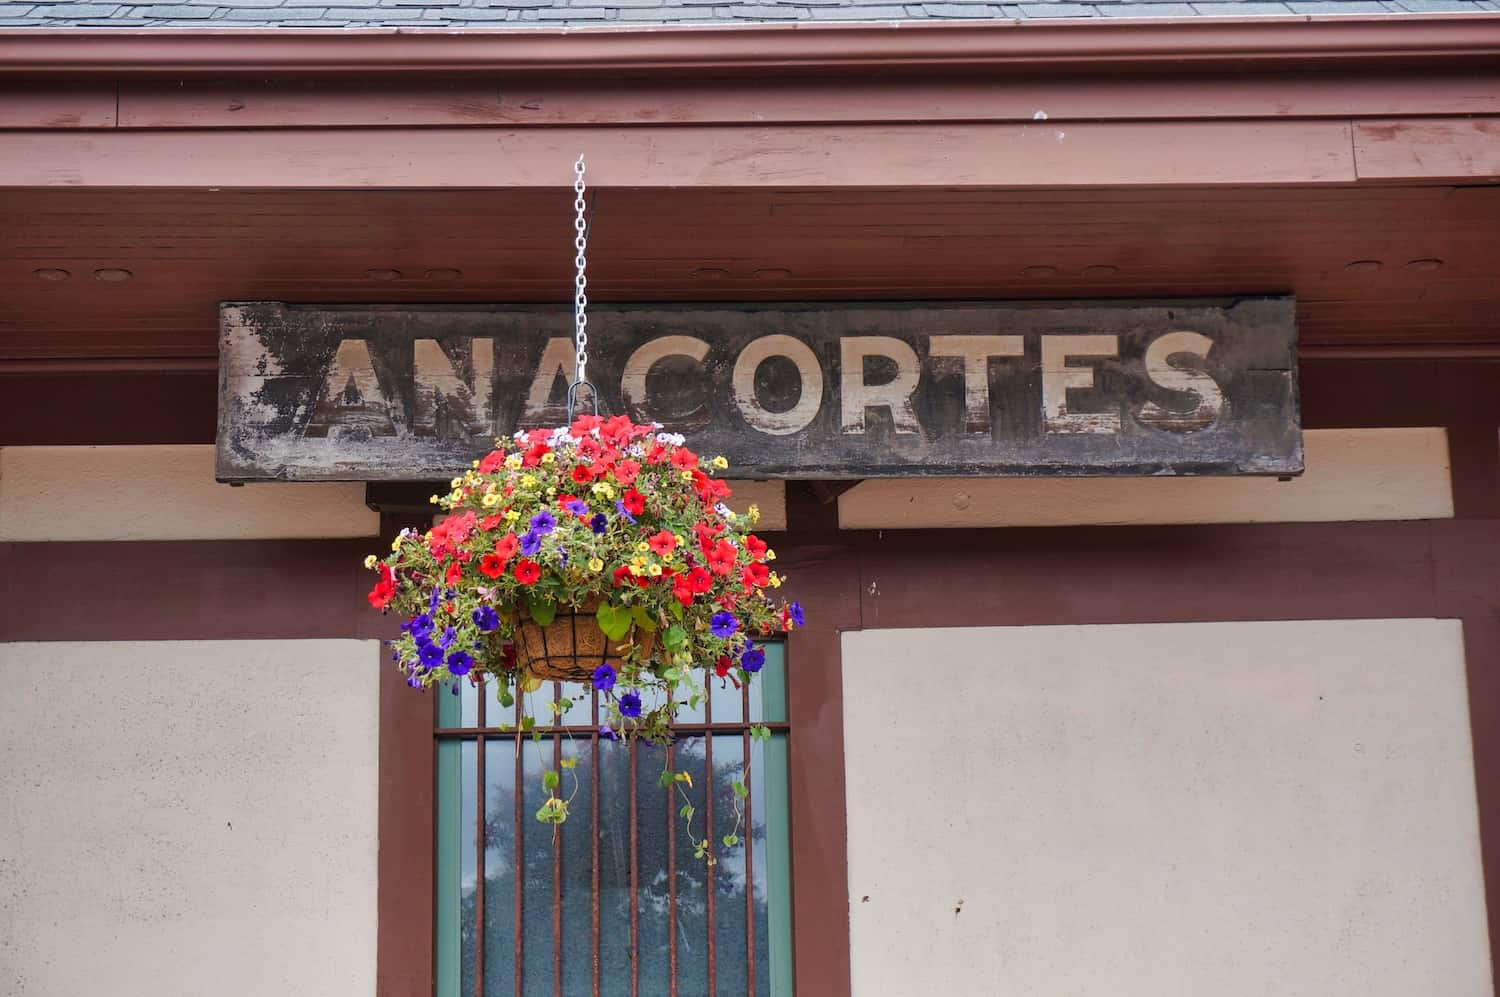 Anacortes Travel Guide - Anacortes Depot